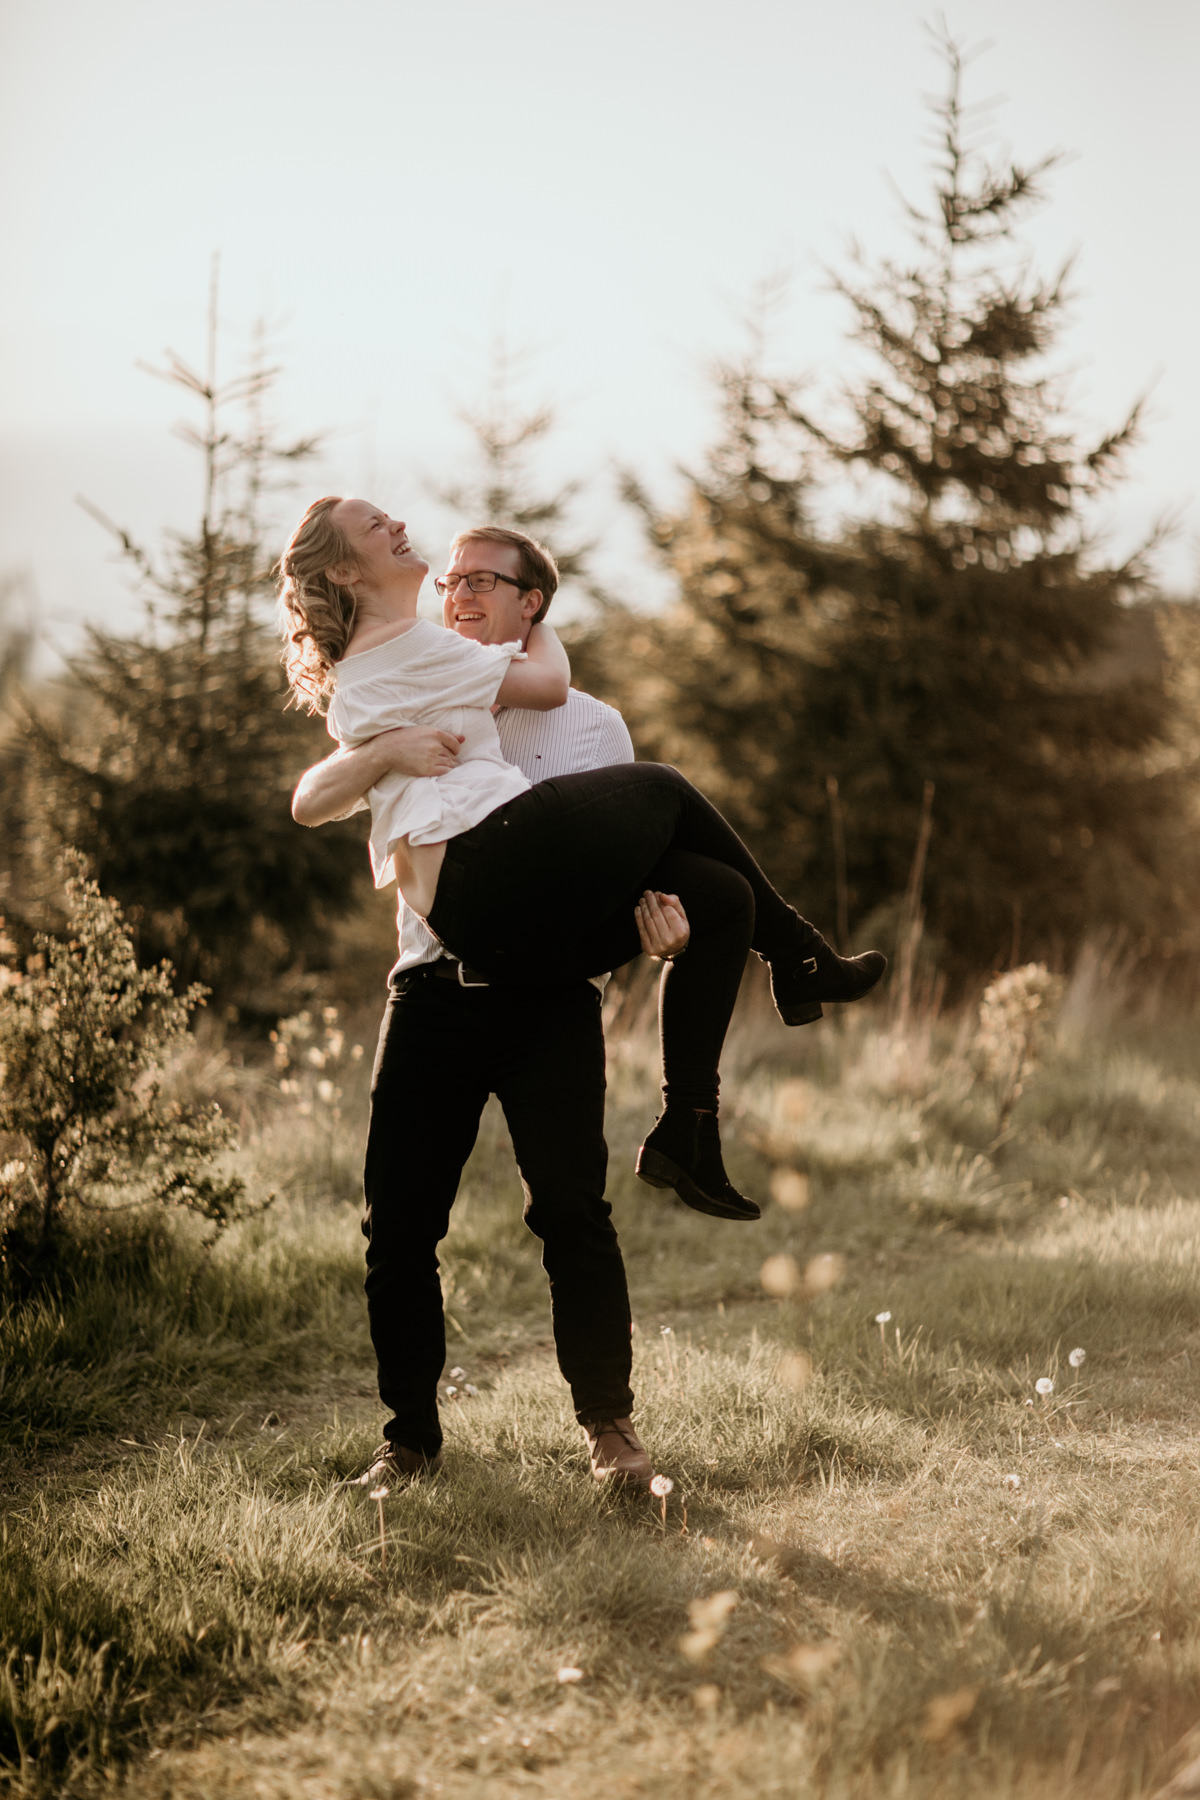 guy lifting his fiance in his arms during the cotswolds countryside engagement session